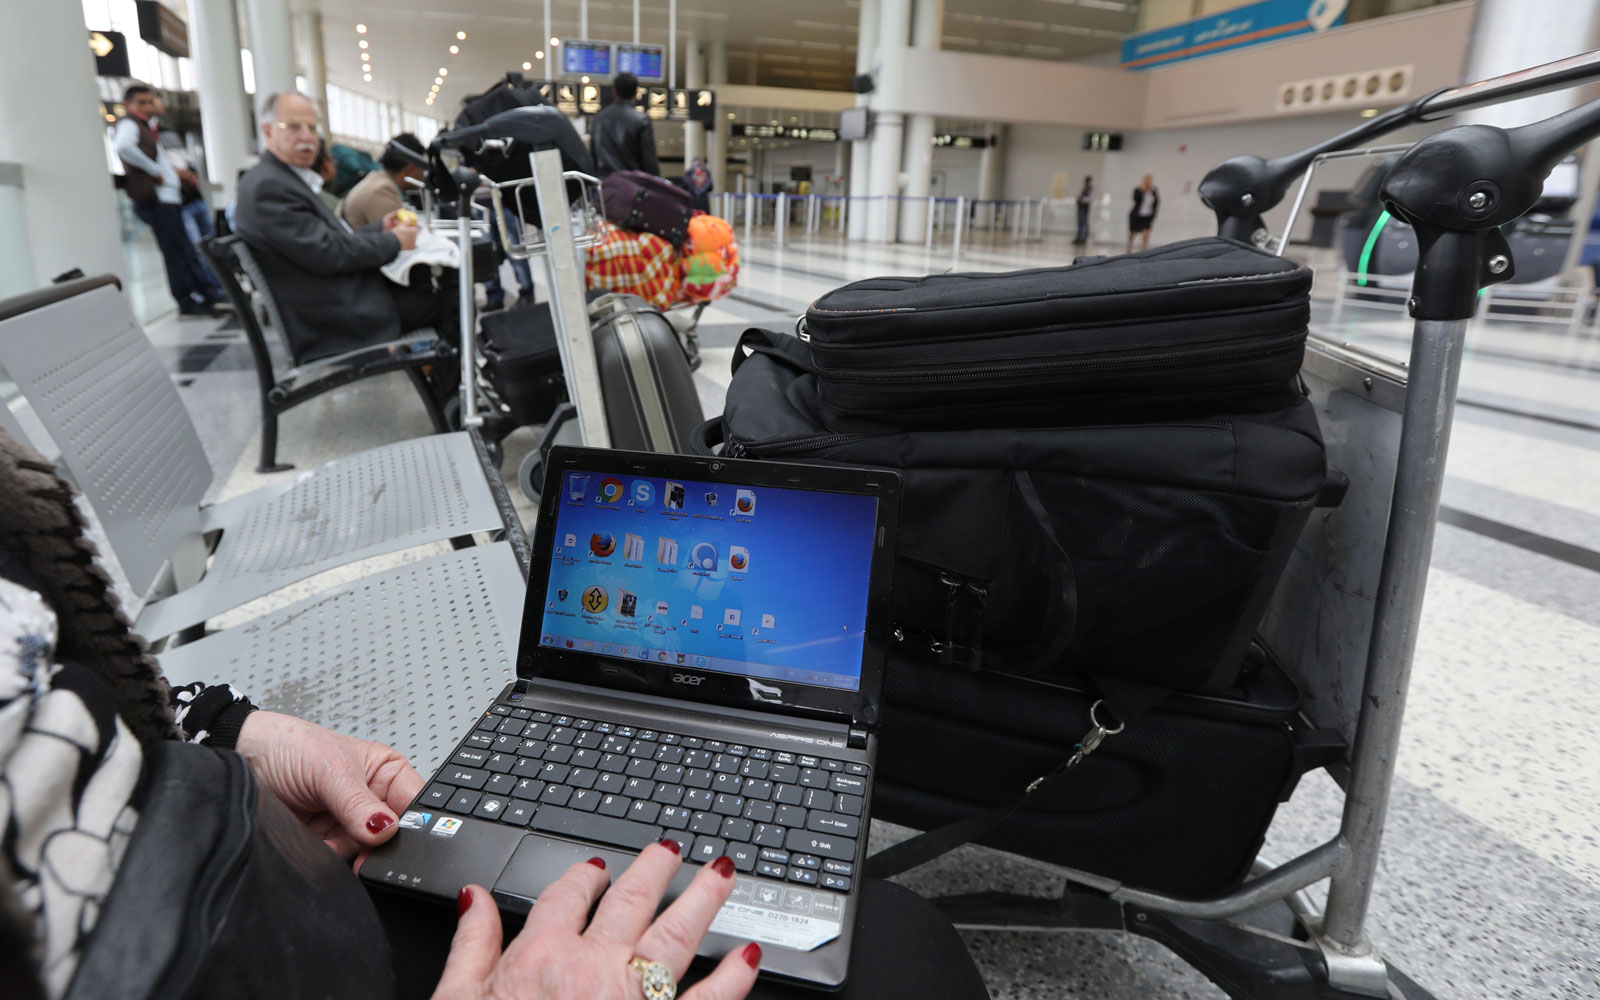 How to keep your laptop safe in checked luggage